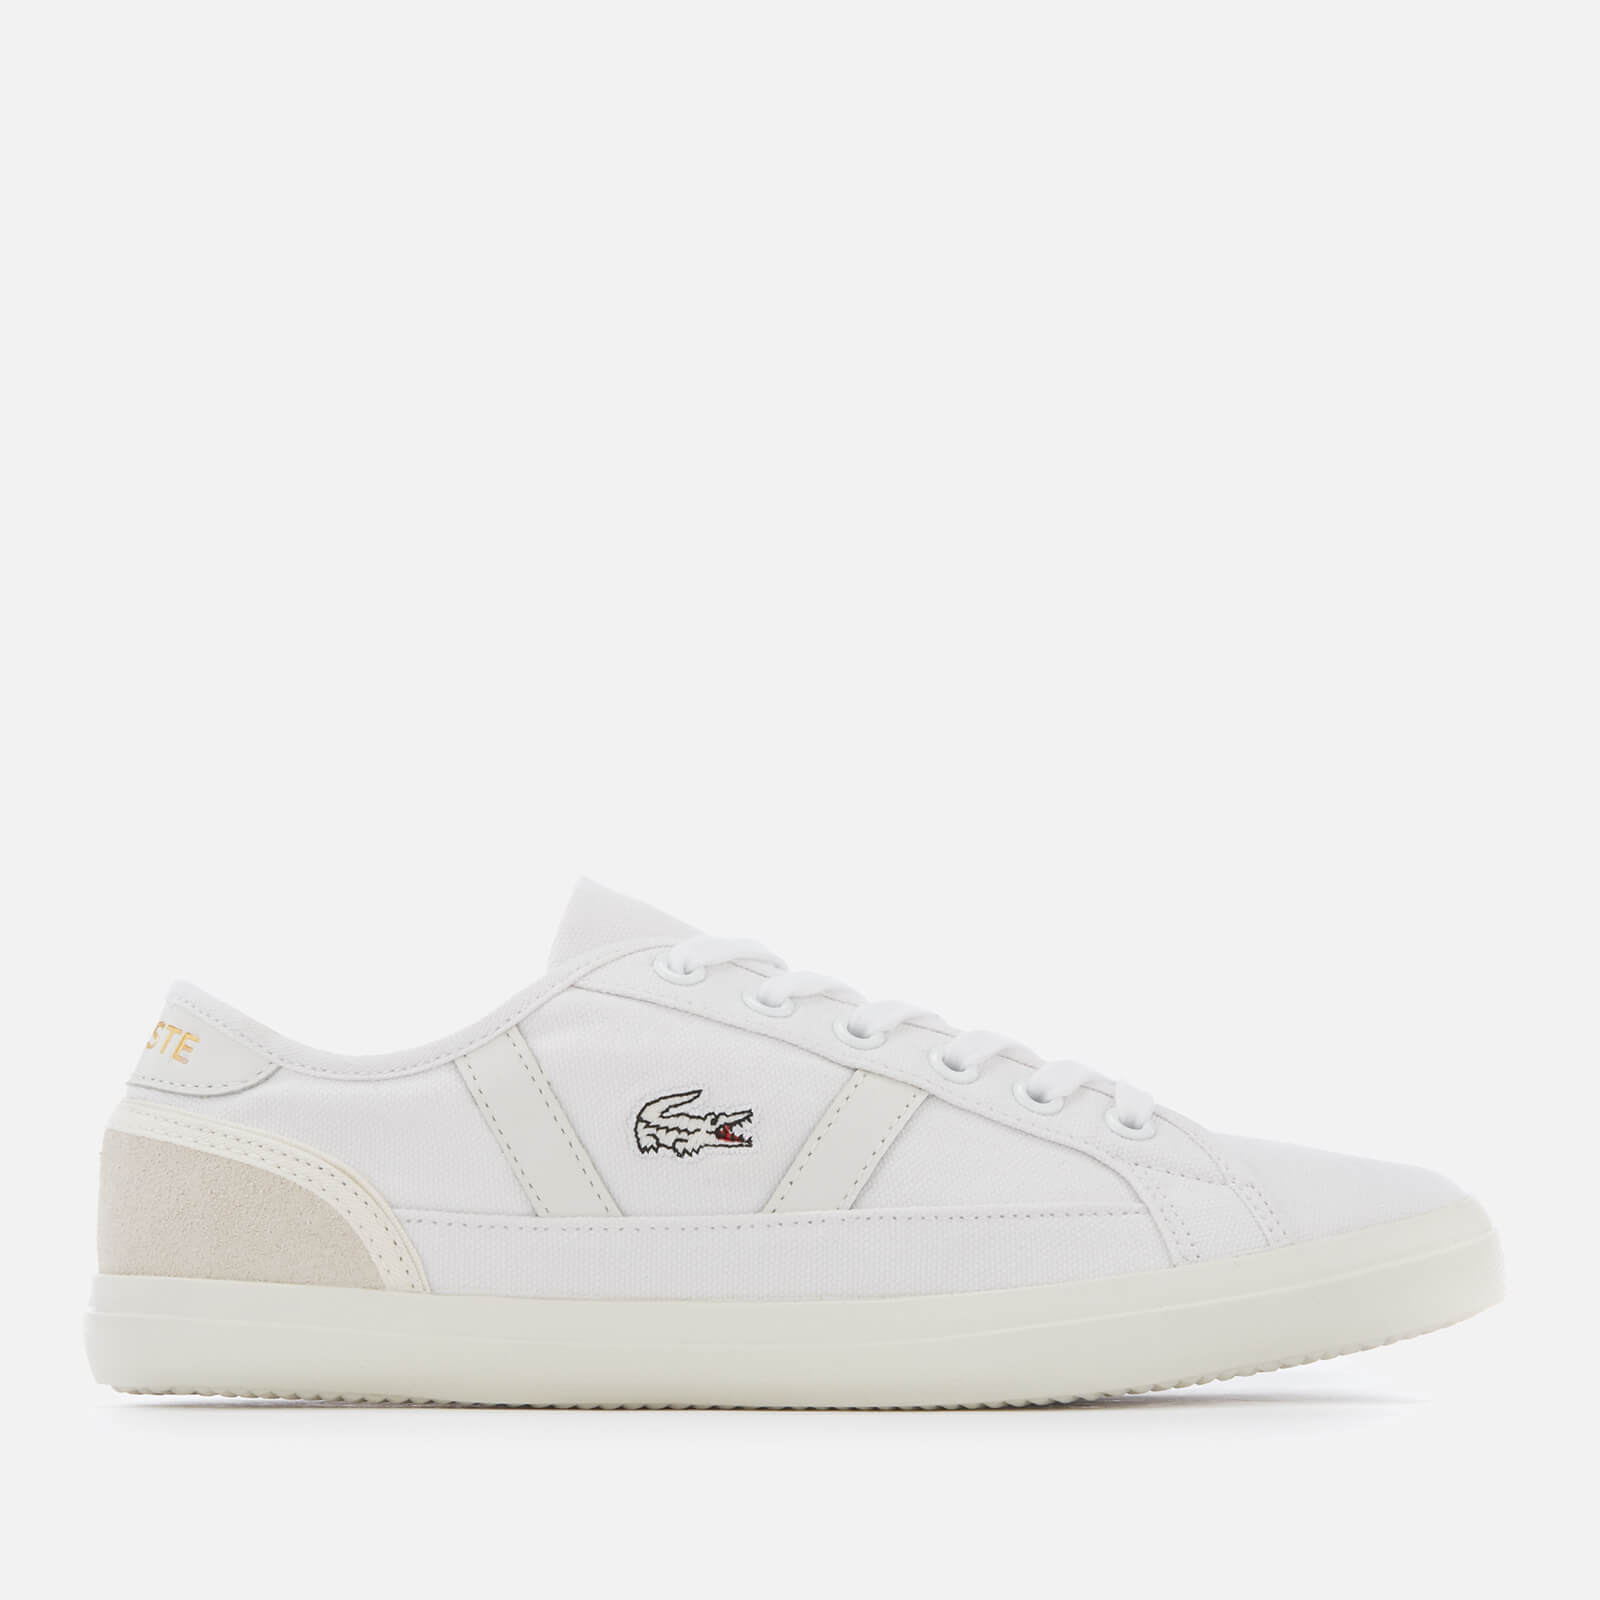 bef0c11291 Lacoste Women's Sideline 119 1 Canvas Vulcanised Trainers - White/Off White